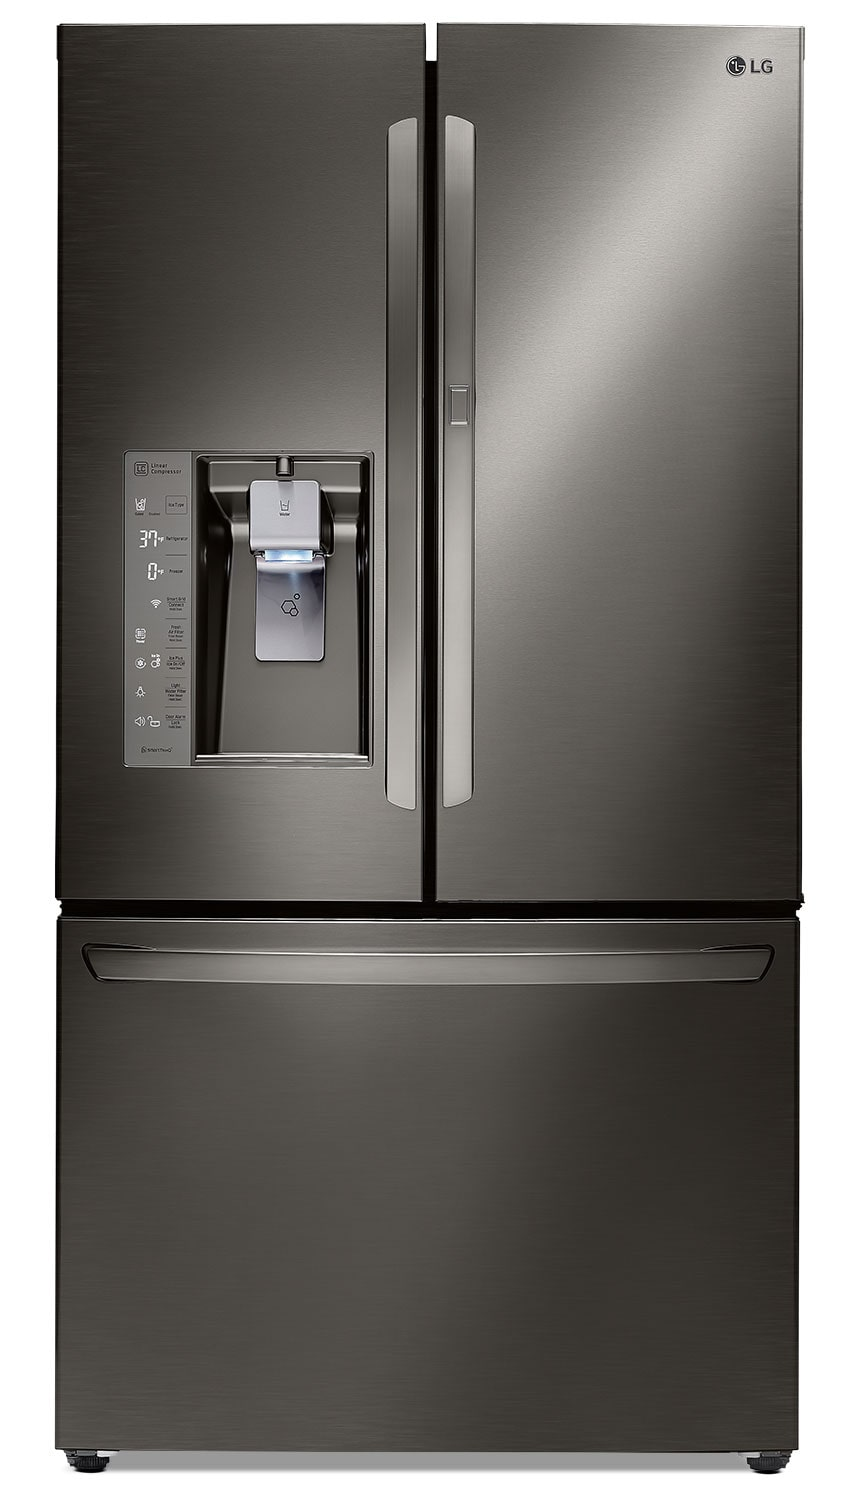 Refrigerators and Freezers - LG Appliances Black Stainless Steel French-Door Refrigerator (29.6 Cu. Ft.) - LFXS30766D